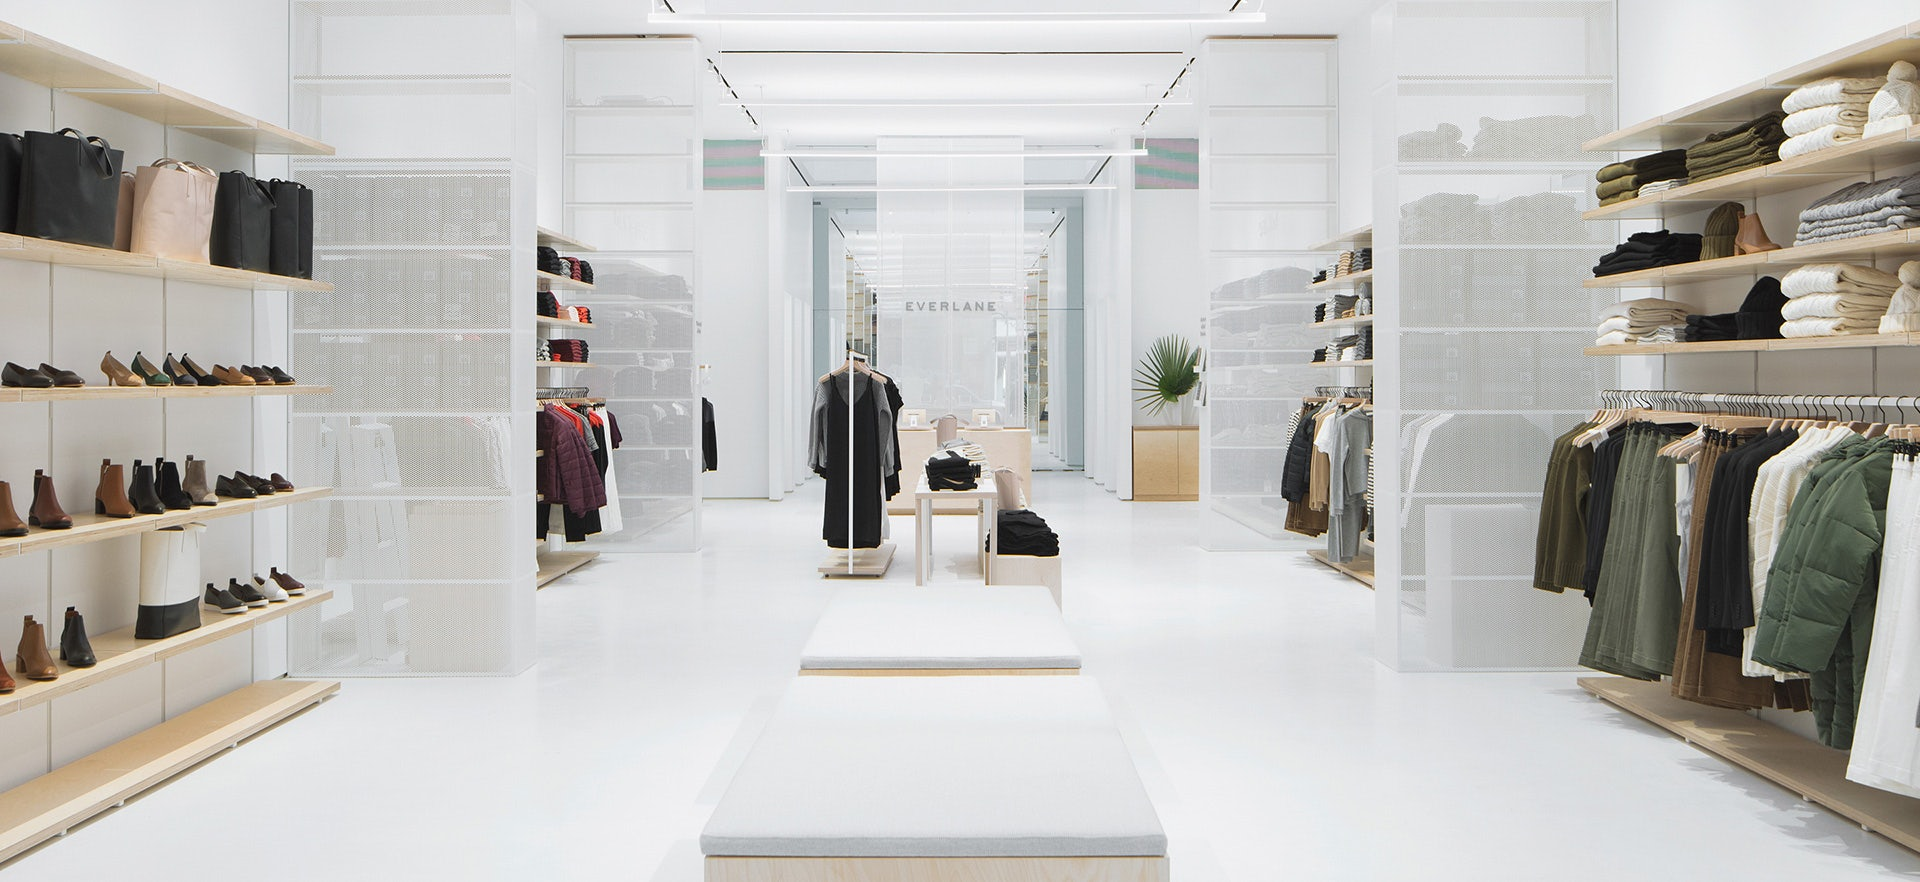 everlane store transparent clothing company